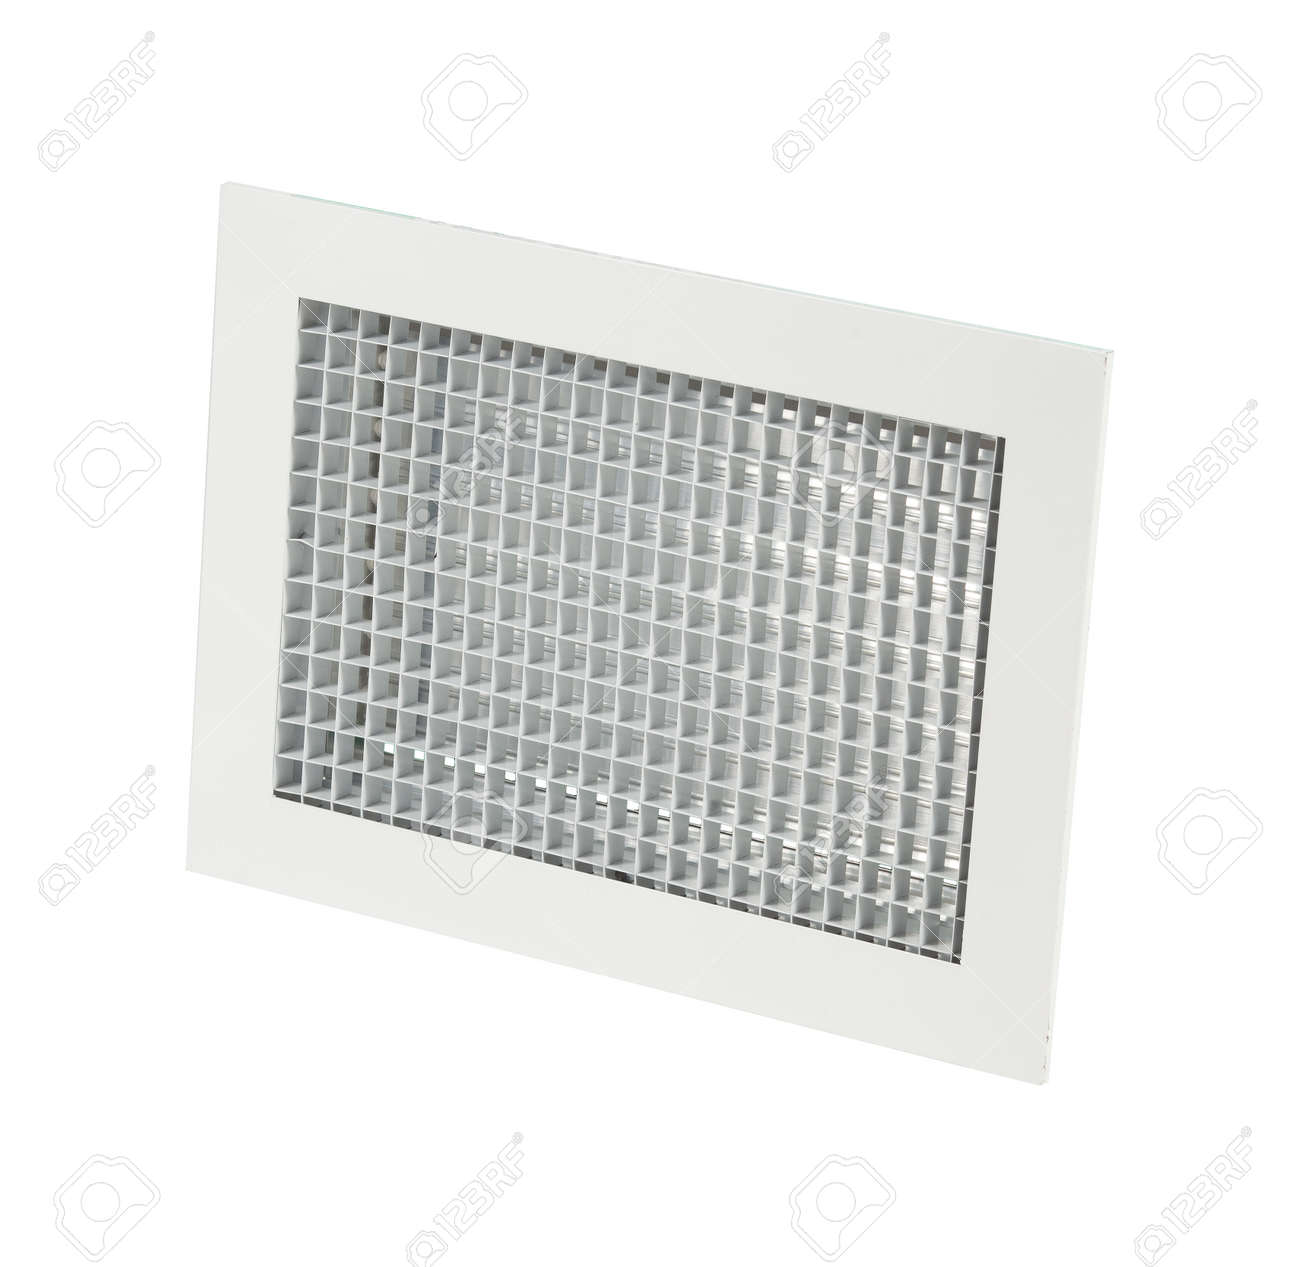 Supply and exhaust ventilation grilles on white background. - 172306854